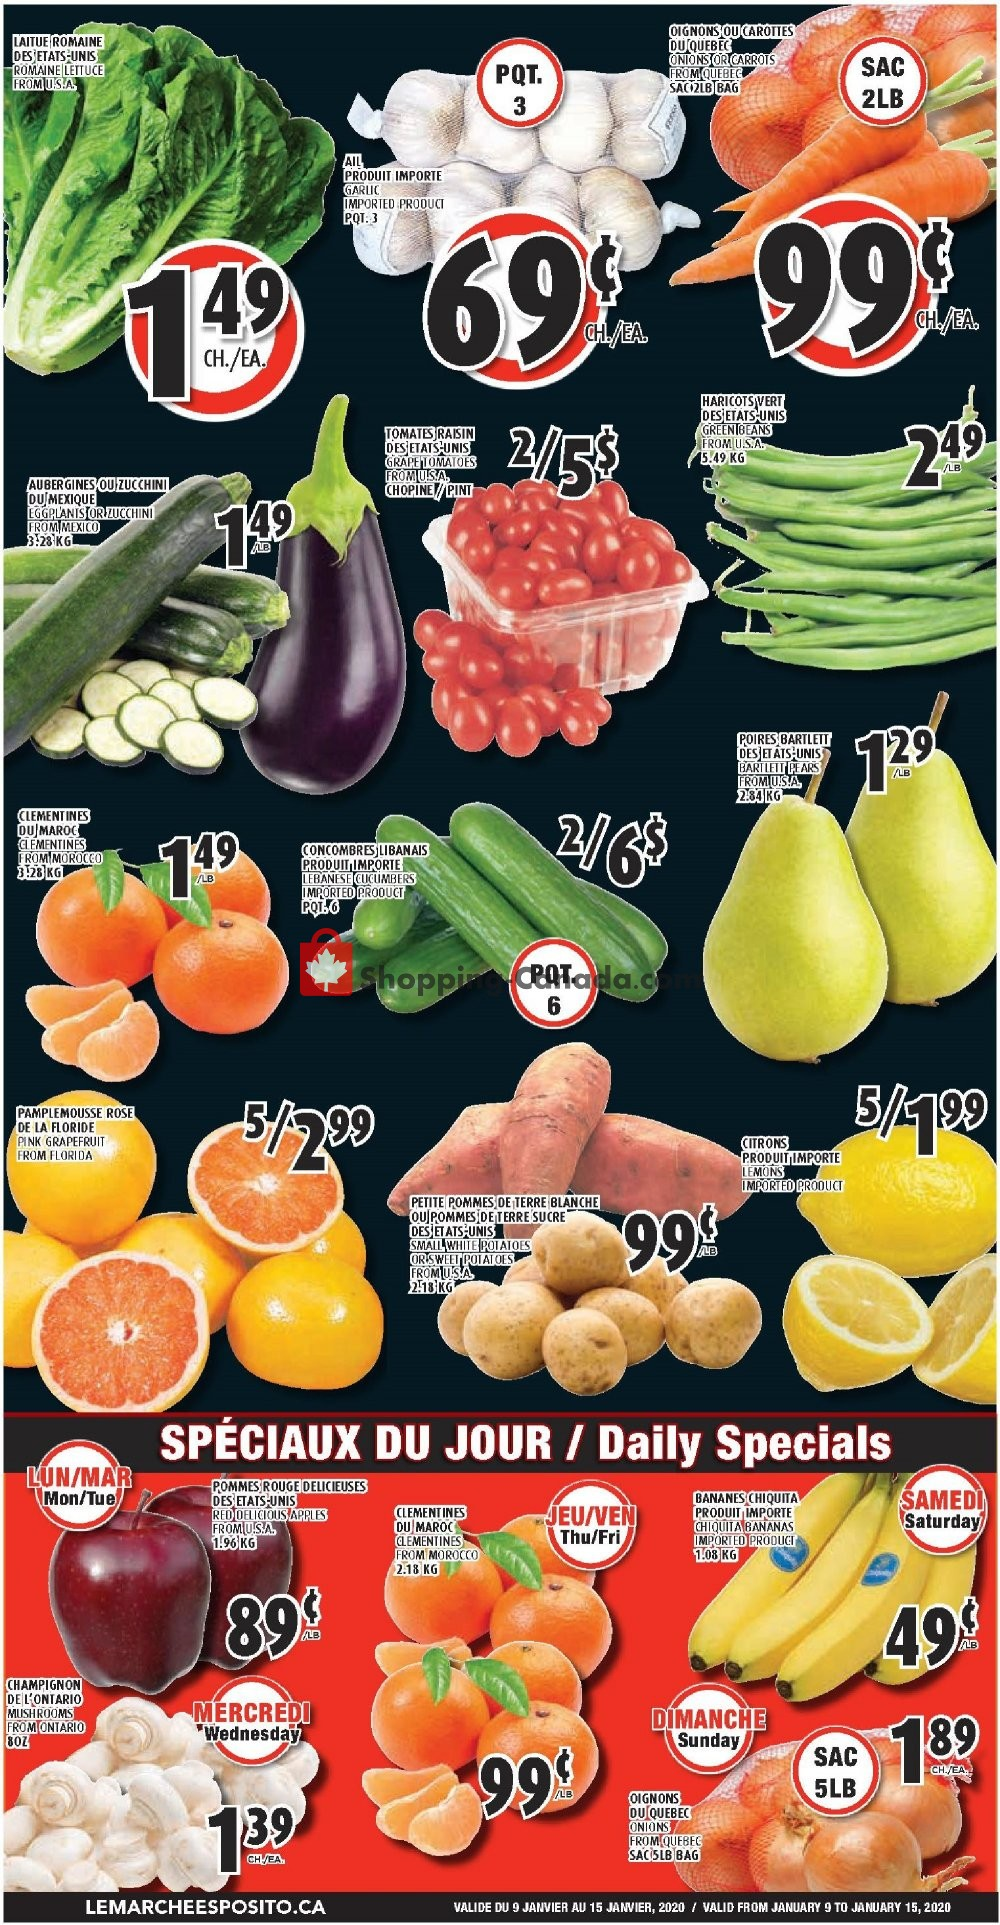 Flyer Le Marché Esposito Canada - from Thursday January 9, 2020 to Wednesday January 15, 2020